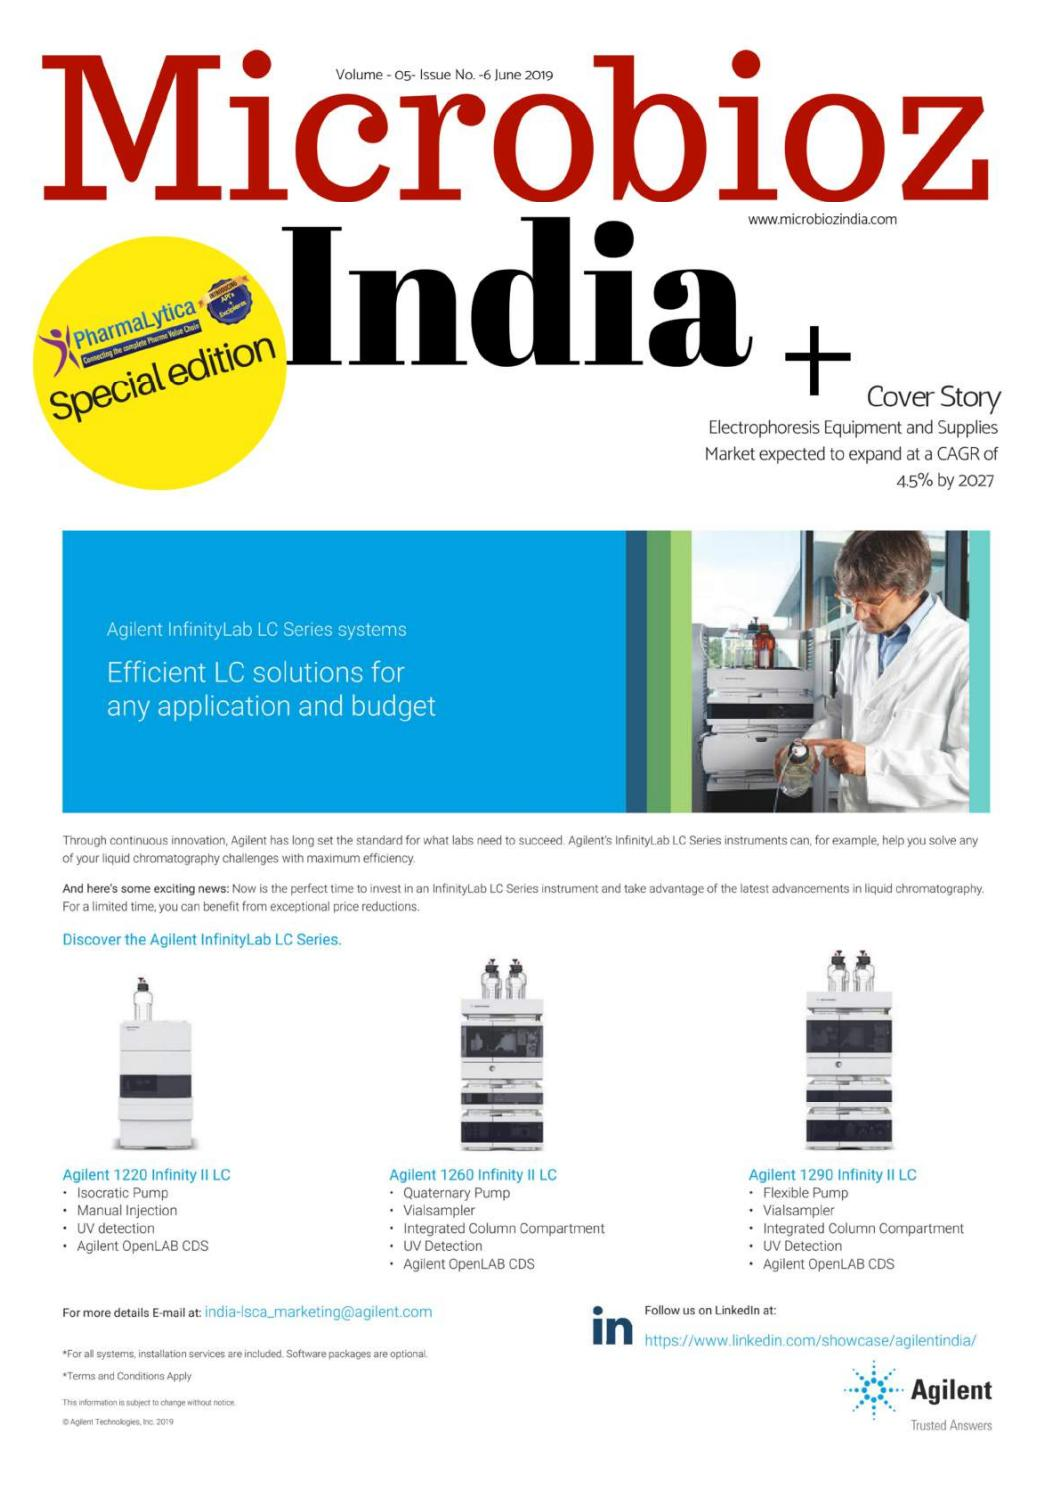 Microbioz India : June 2019 edition of the magazine by